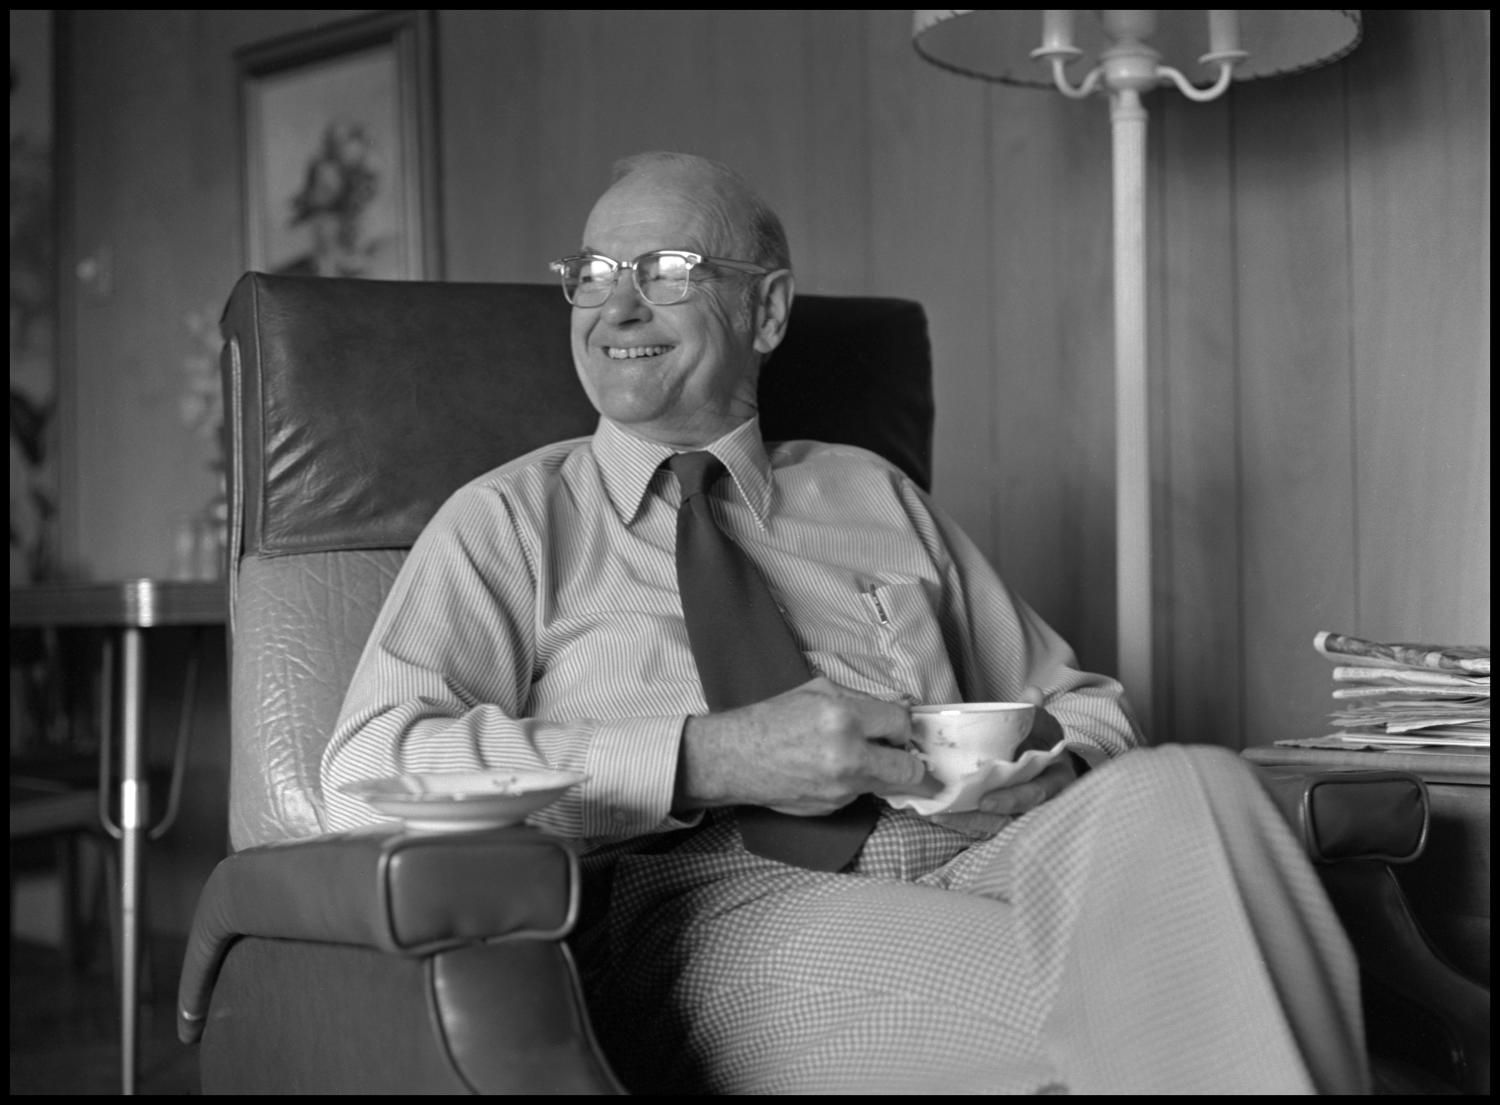 [Garland Brookshear holding his teacup], Photograph of Garland Brookshear, a member of the Management faculty at NTSU, sitting in an easy-chair and holding his teacup. The saucer is still on the armrest and he is looking to the side and laughing. Brookshear was being photographed for his retirement.,